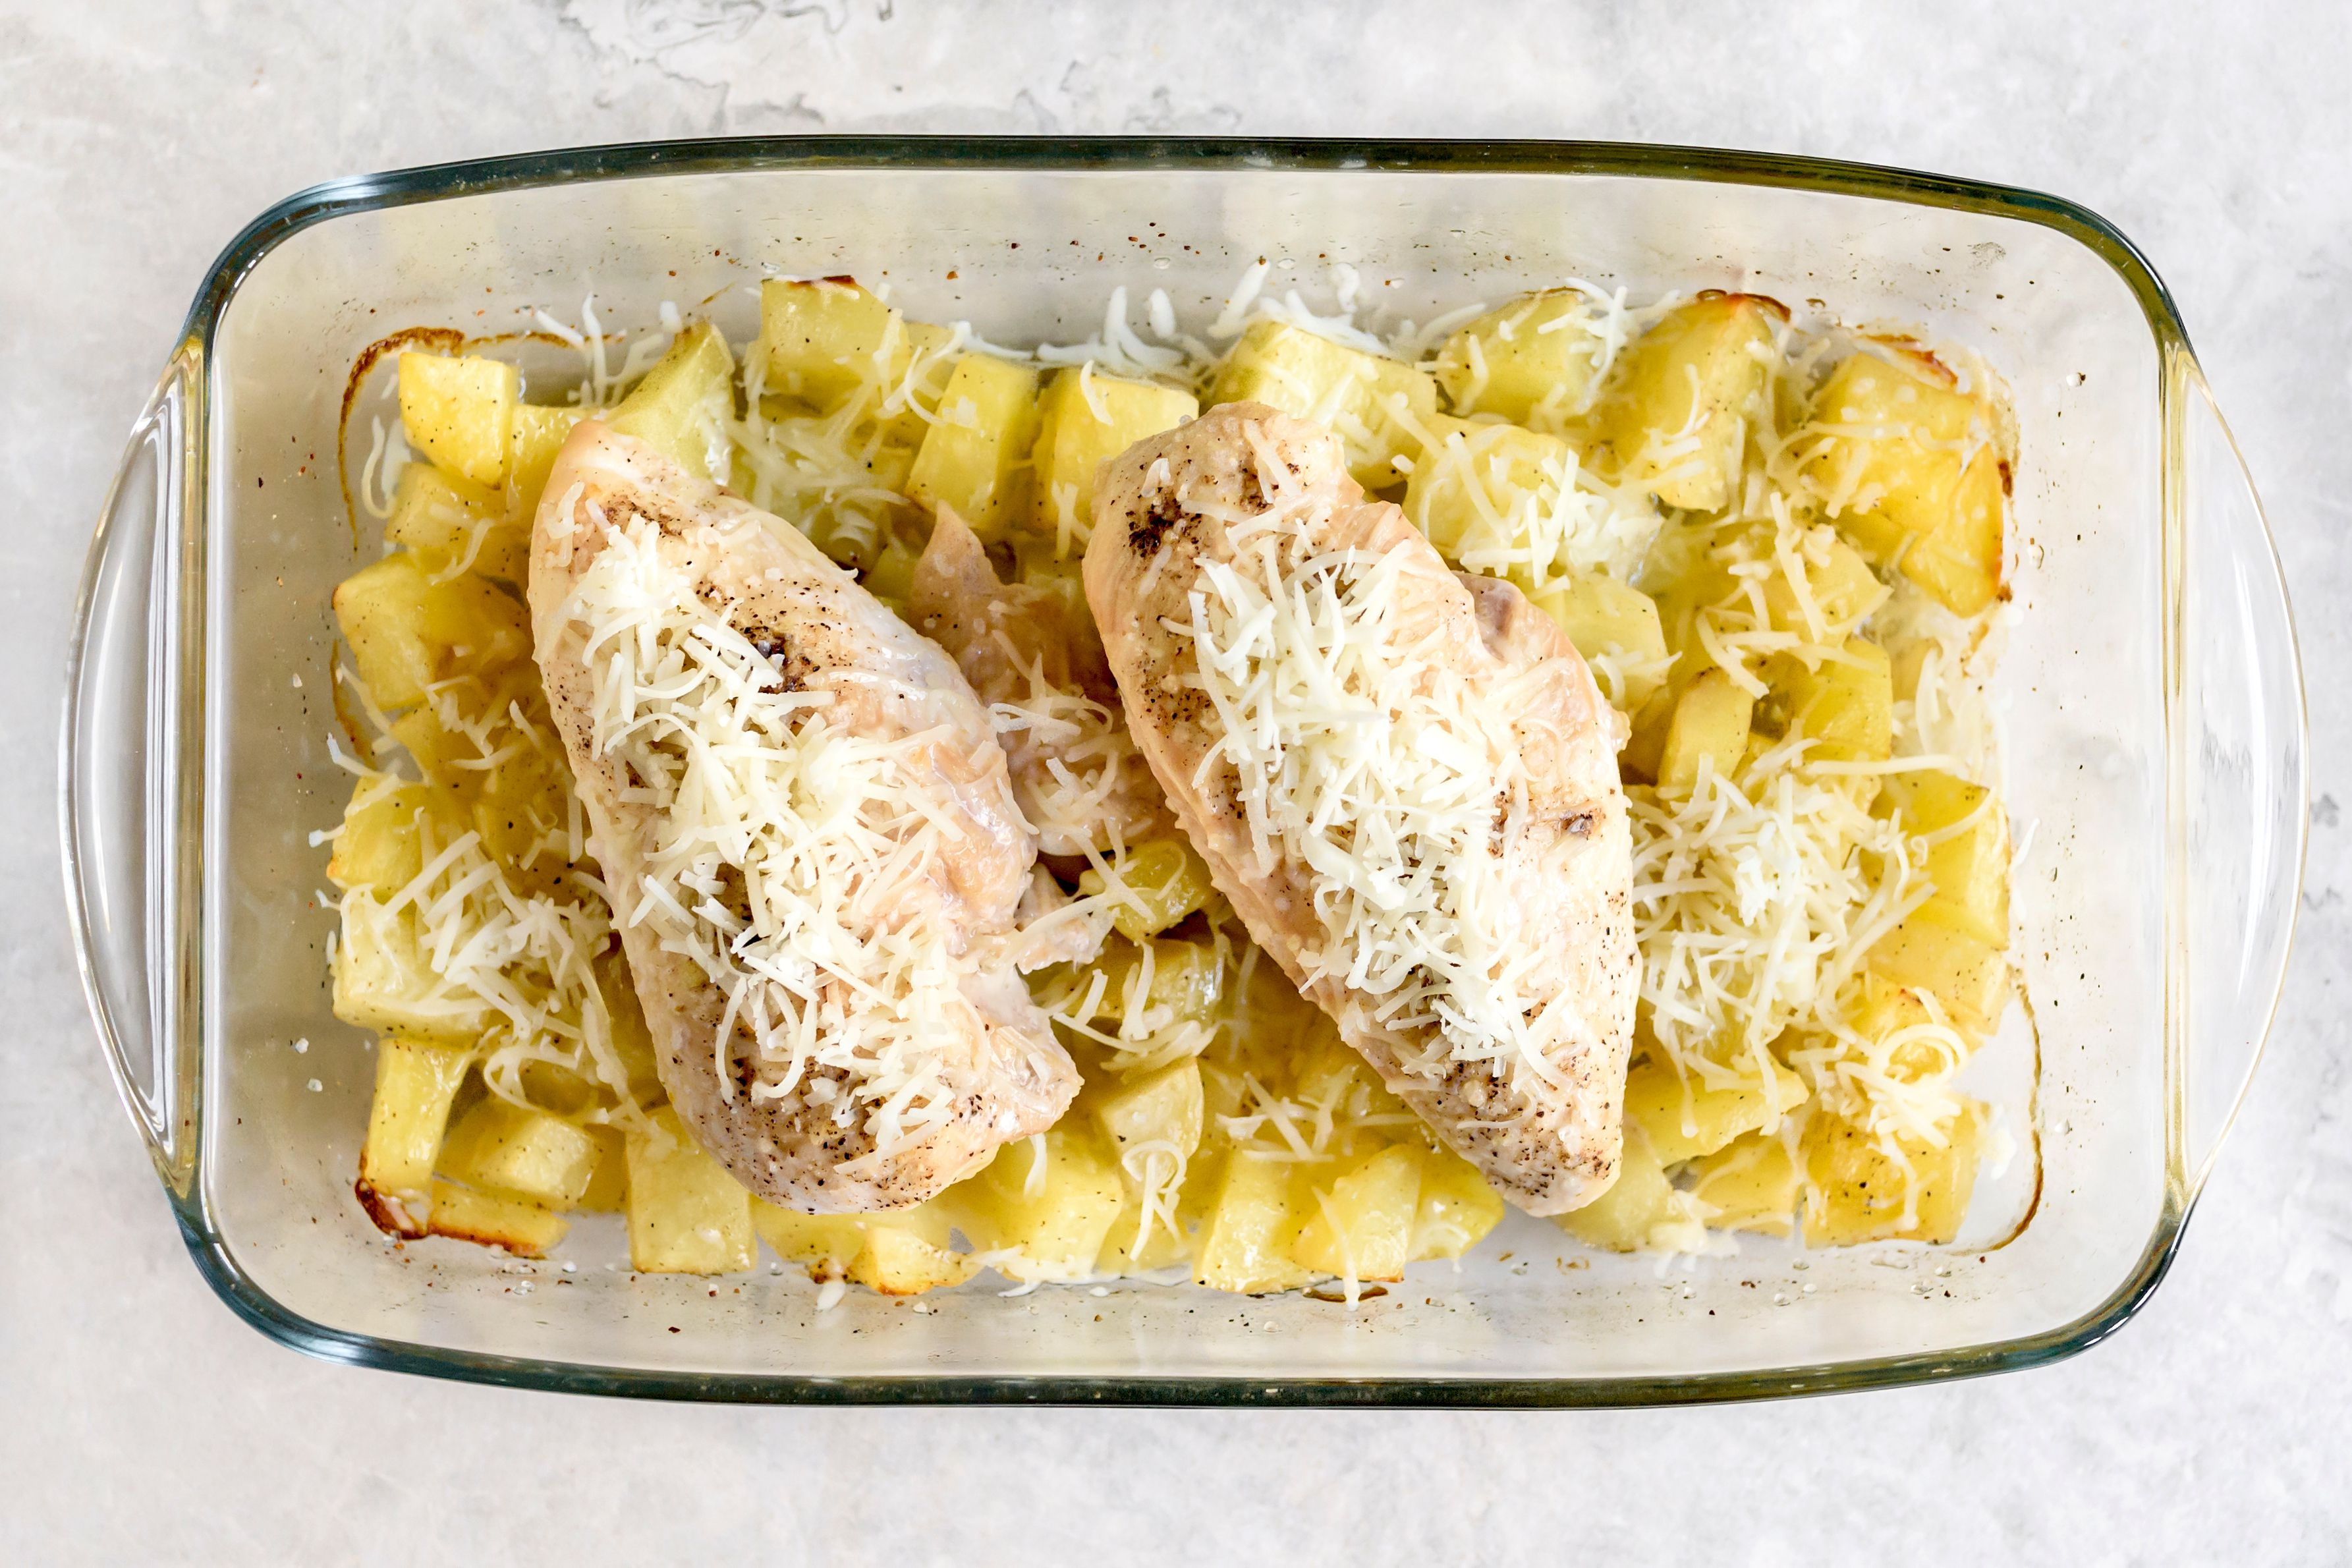 Chicken and potatoes topped with shredded Parmesan